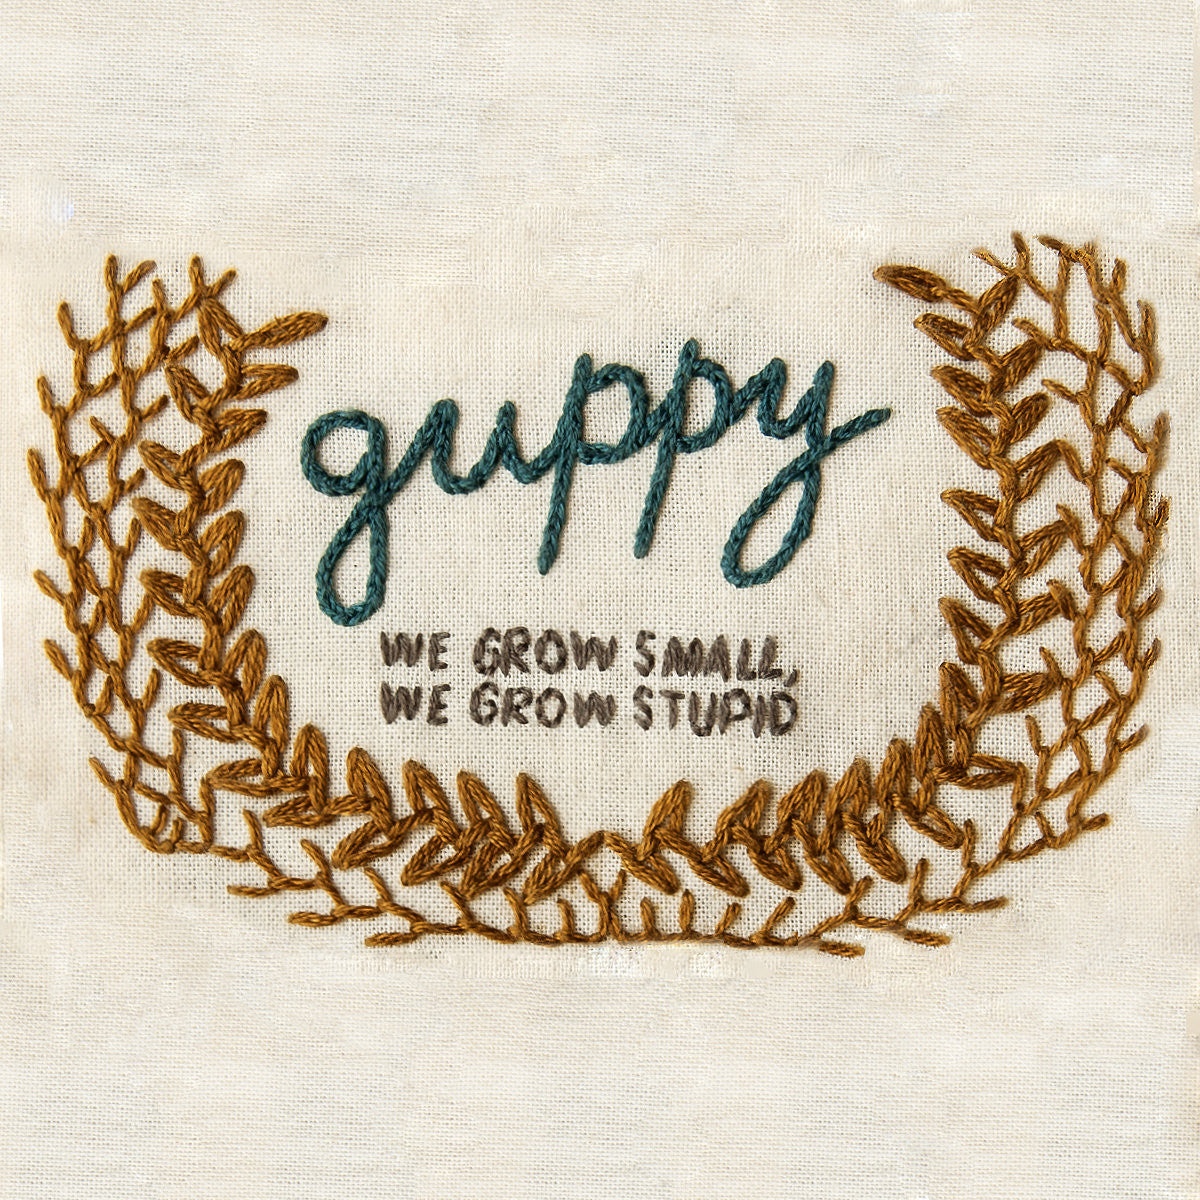 Guppy - We Grow Small, We Grow Stupid EP